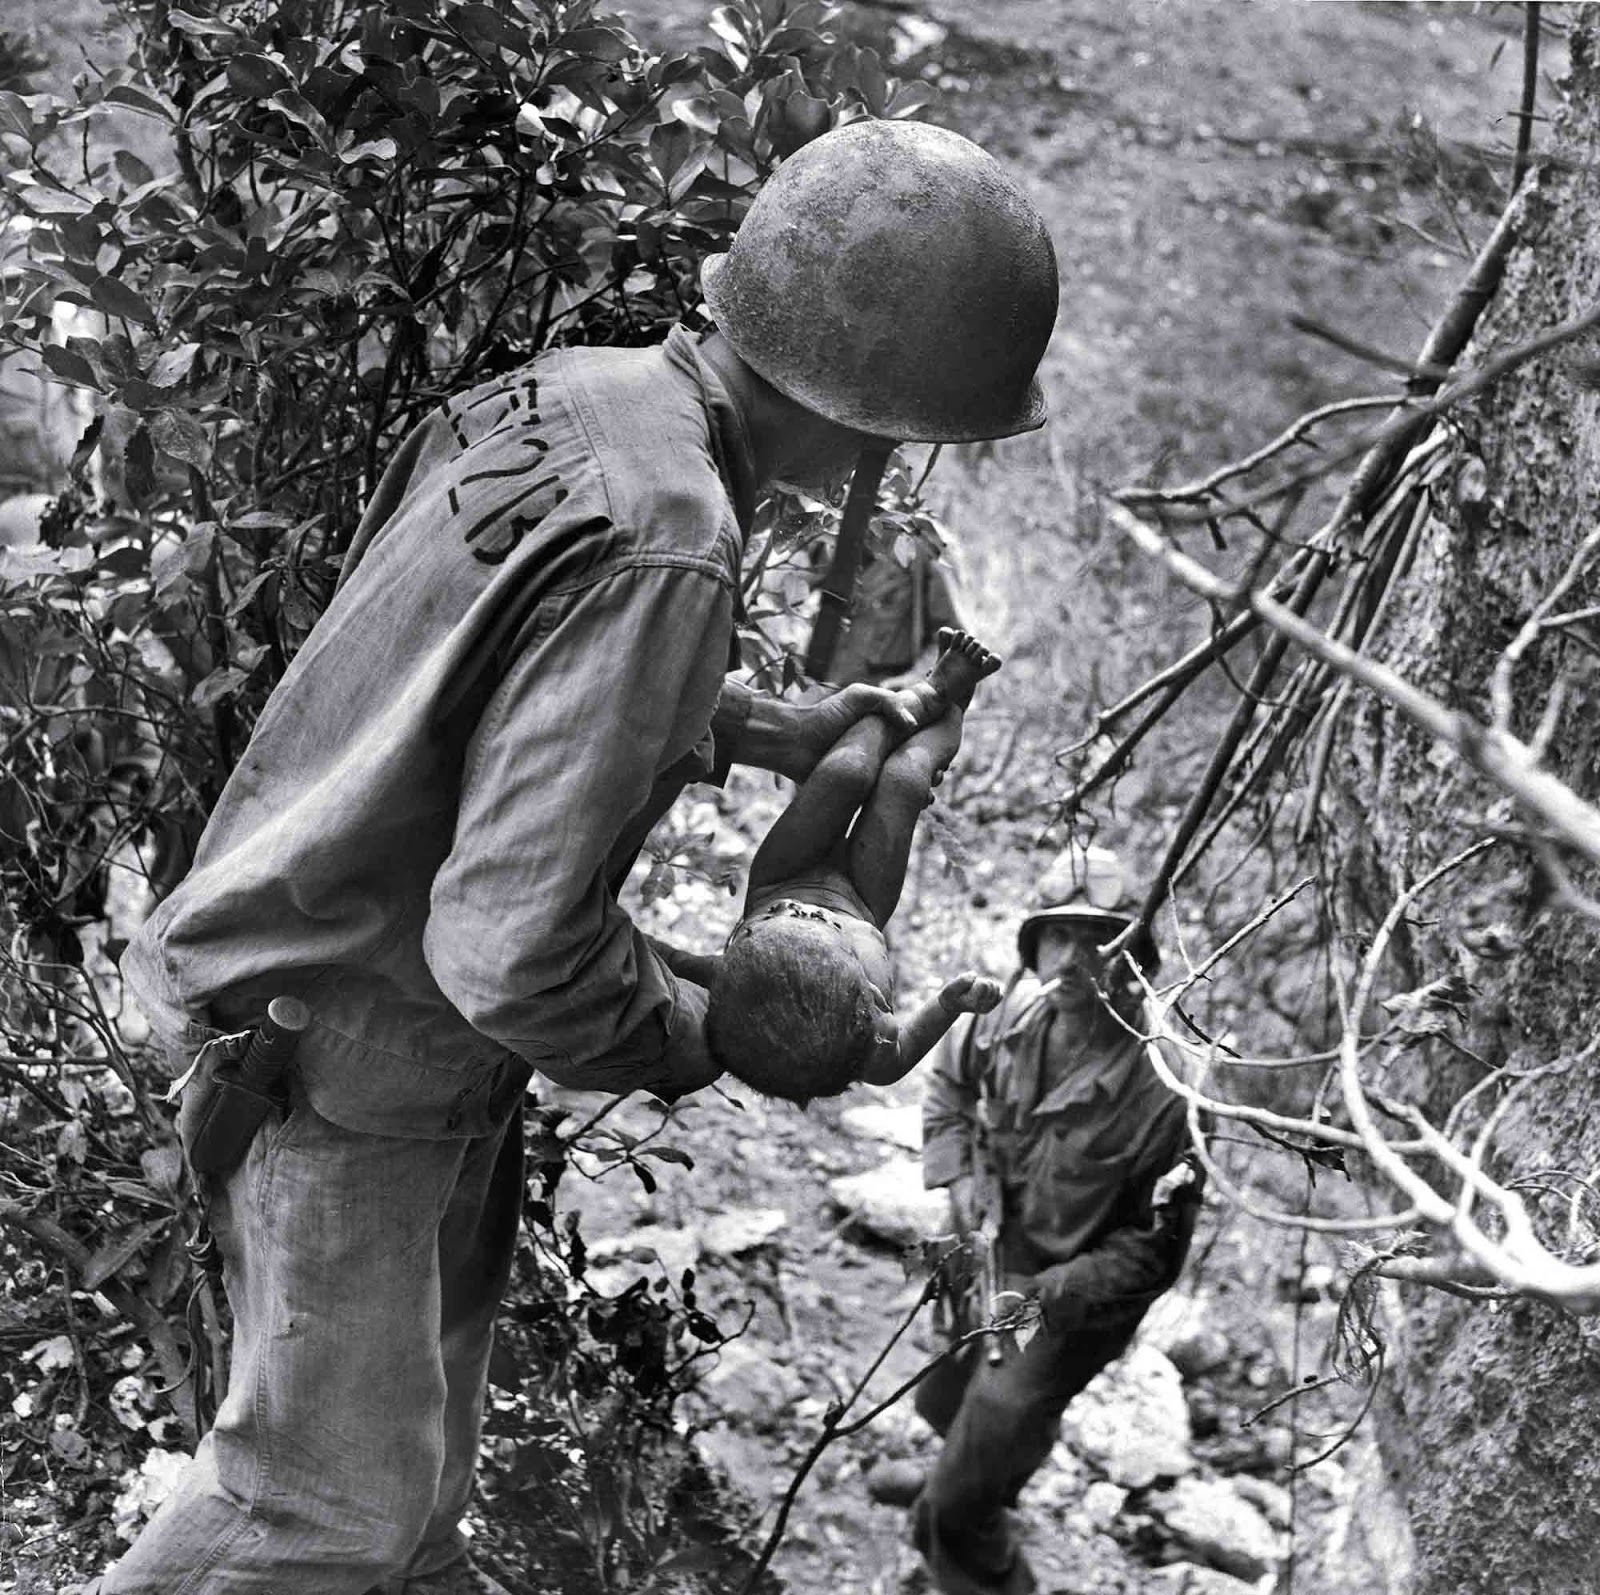 American Marine cradling tiny infant's barely living body which was found face down in a cave where native islanders had been hiding to escape the fighting between US and Japanese forces.